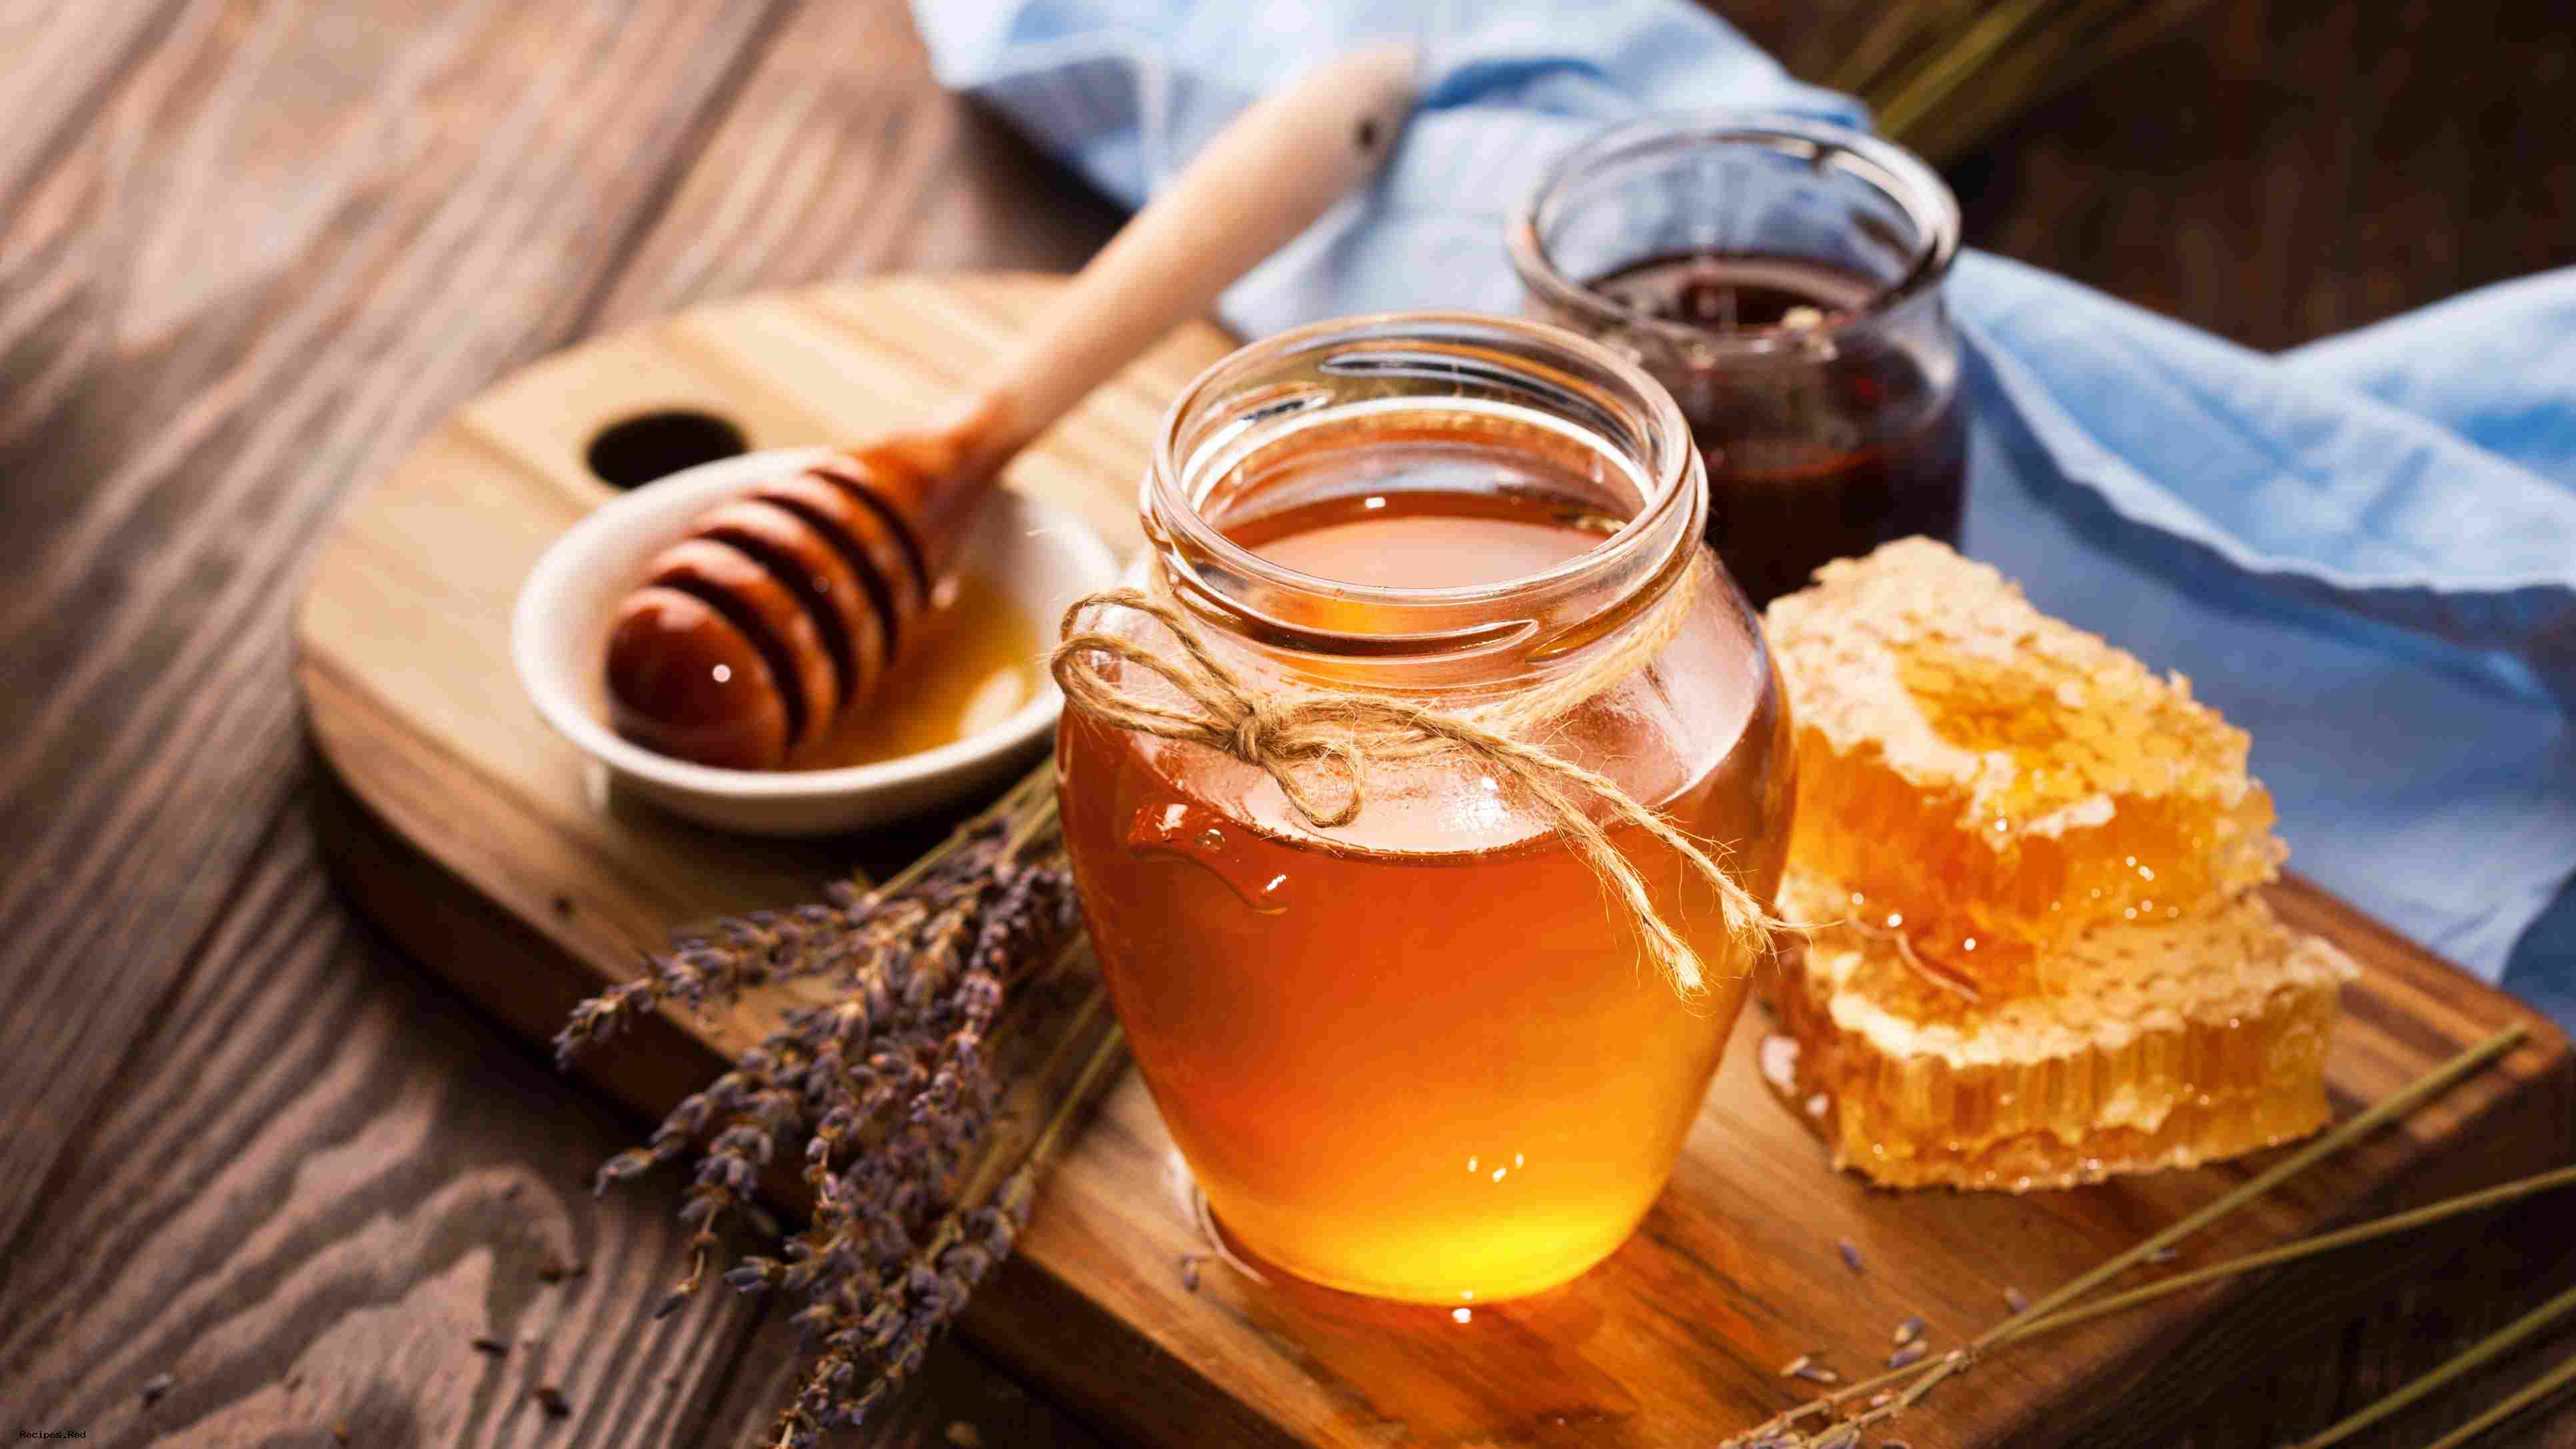 Honey : Benefits, uses, and properties